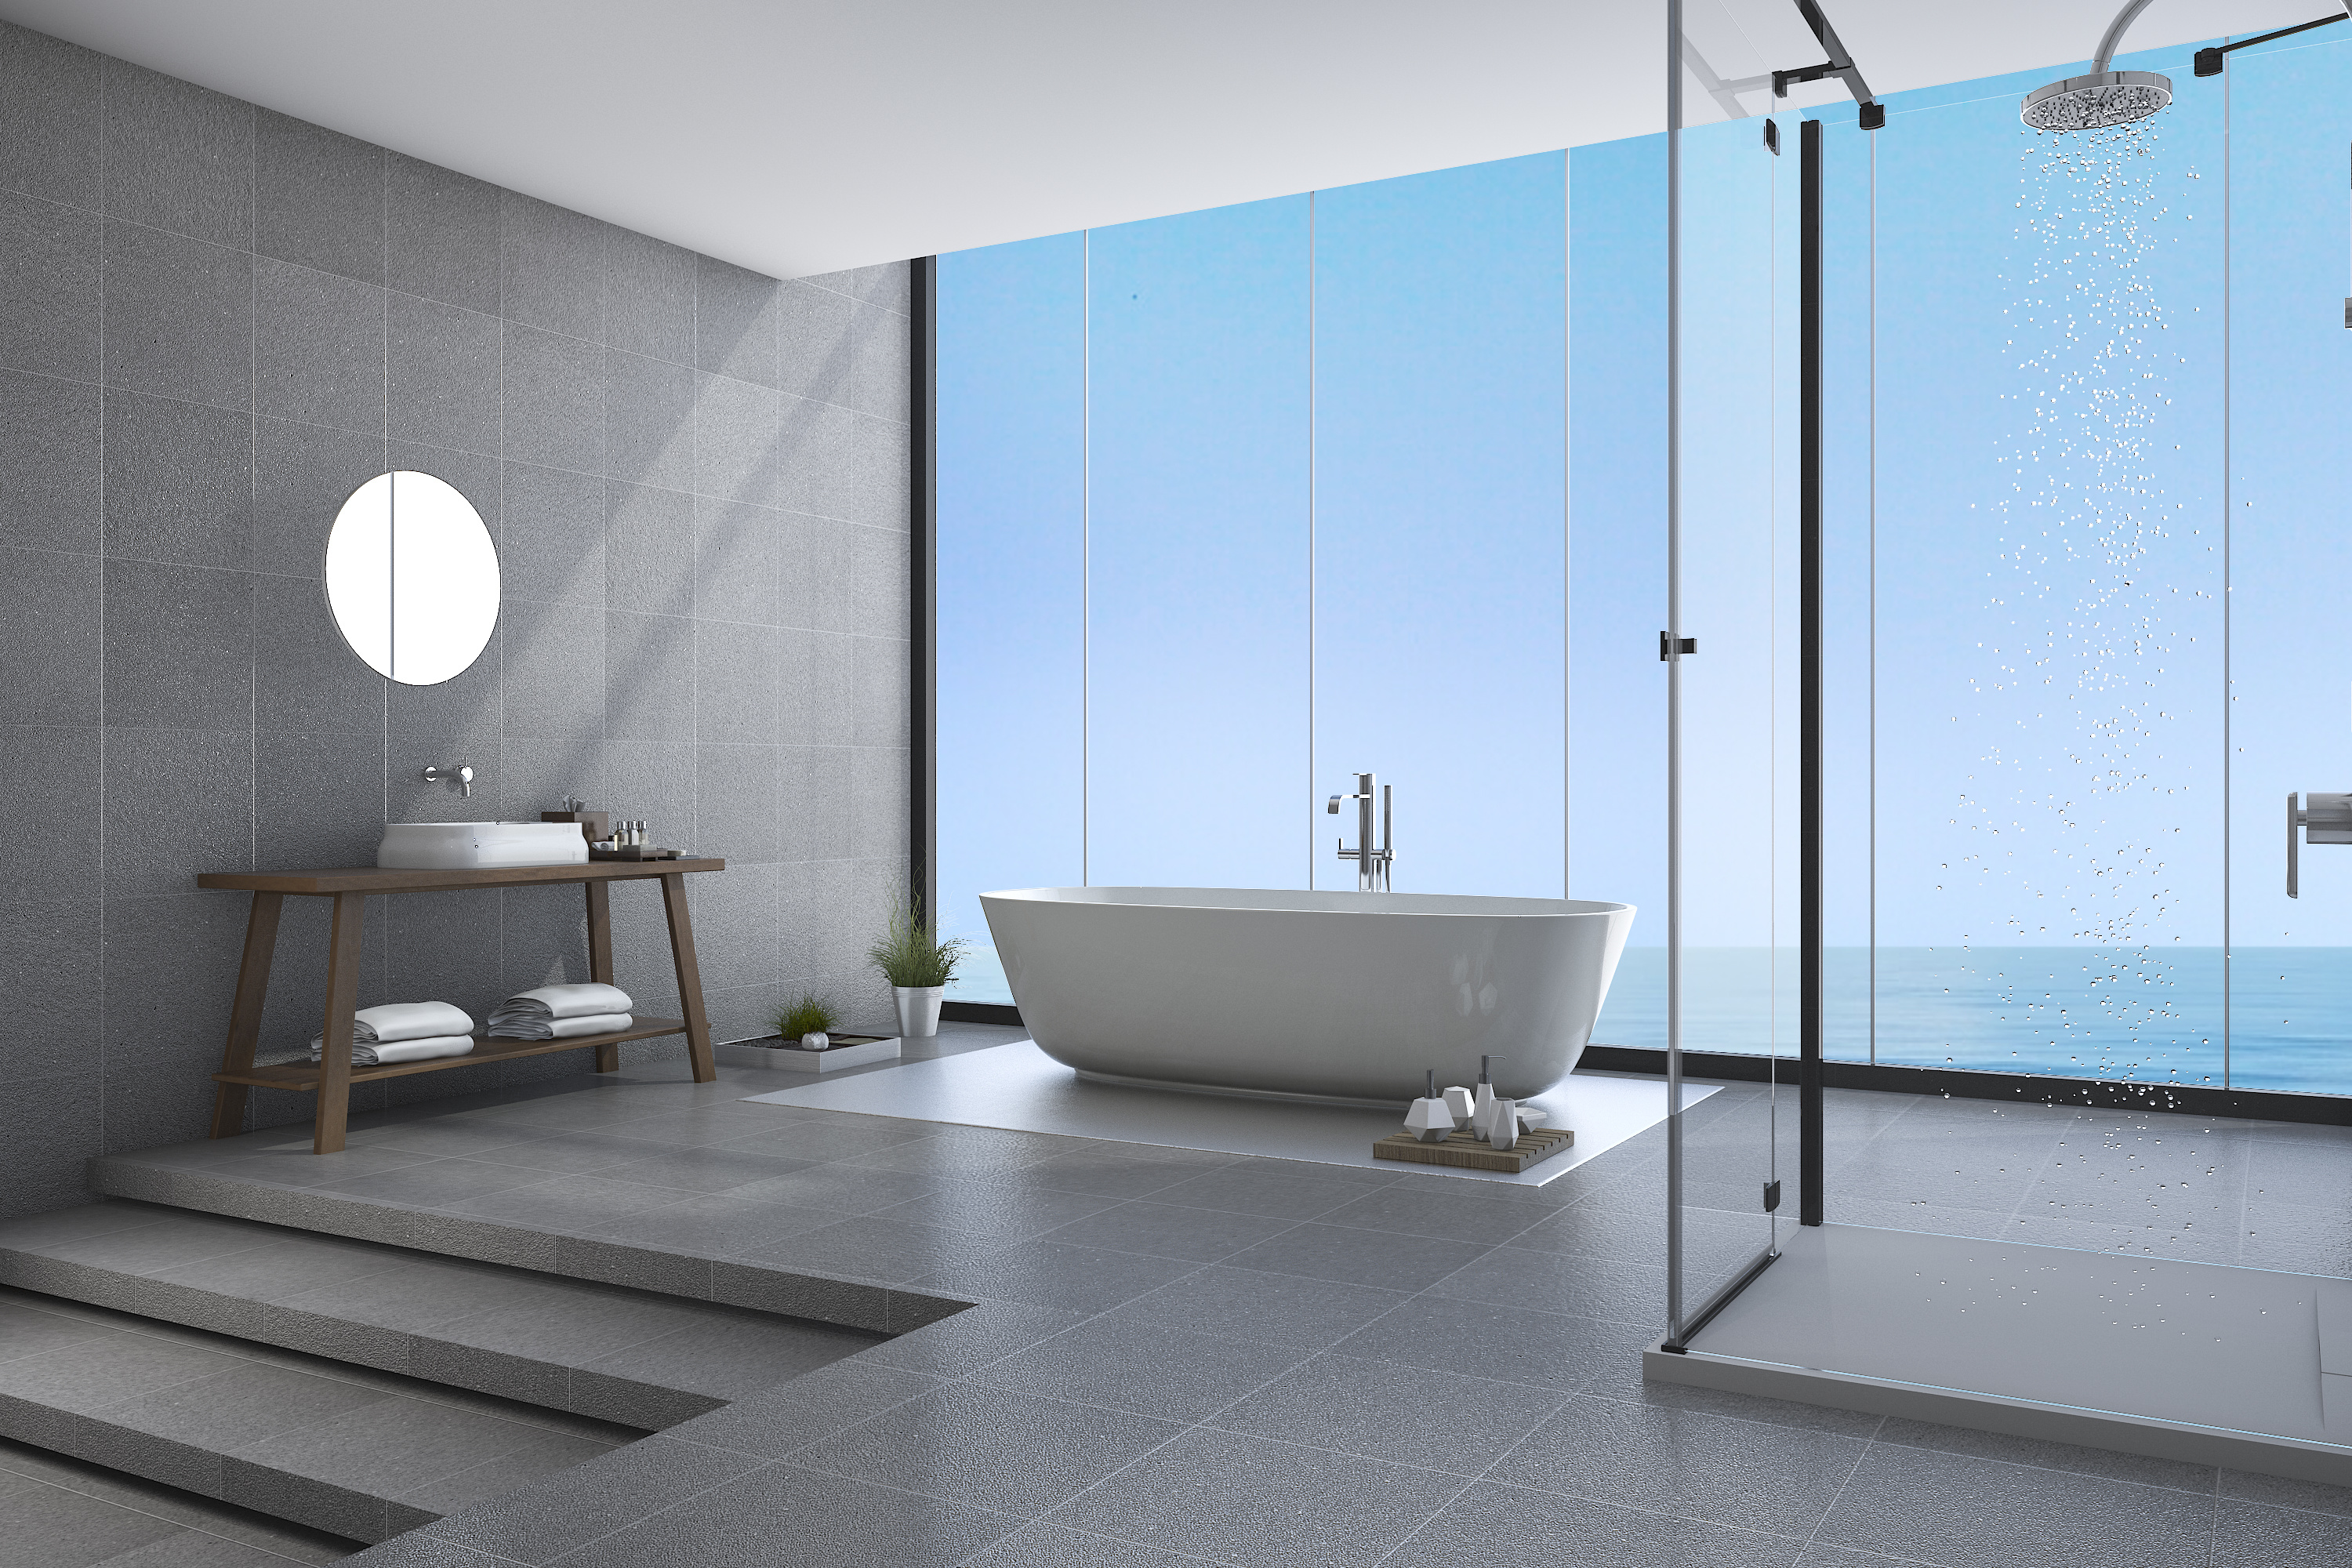 Captivating Things To Consider During A Bathroom Remodel